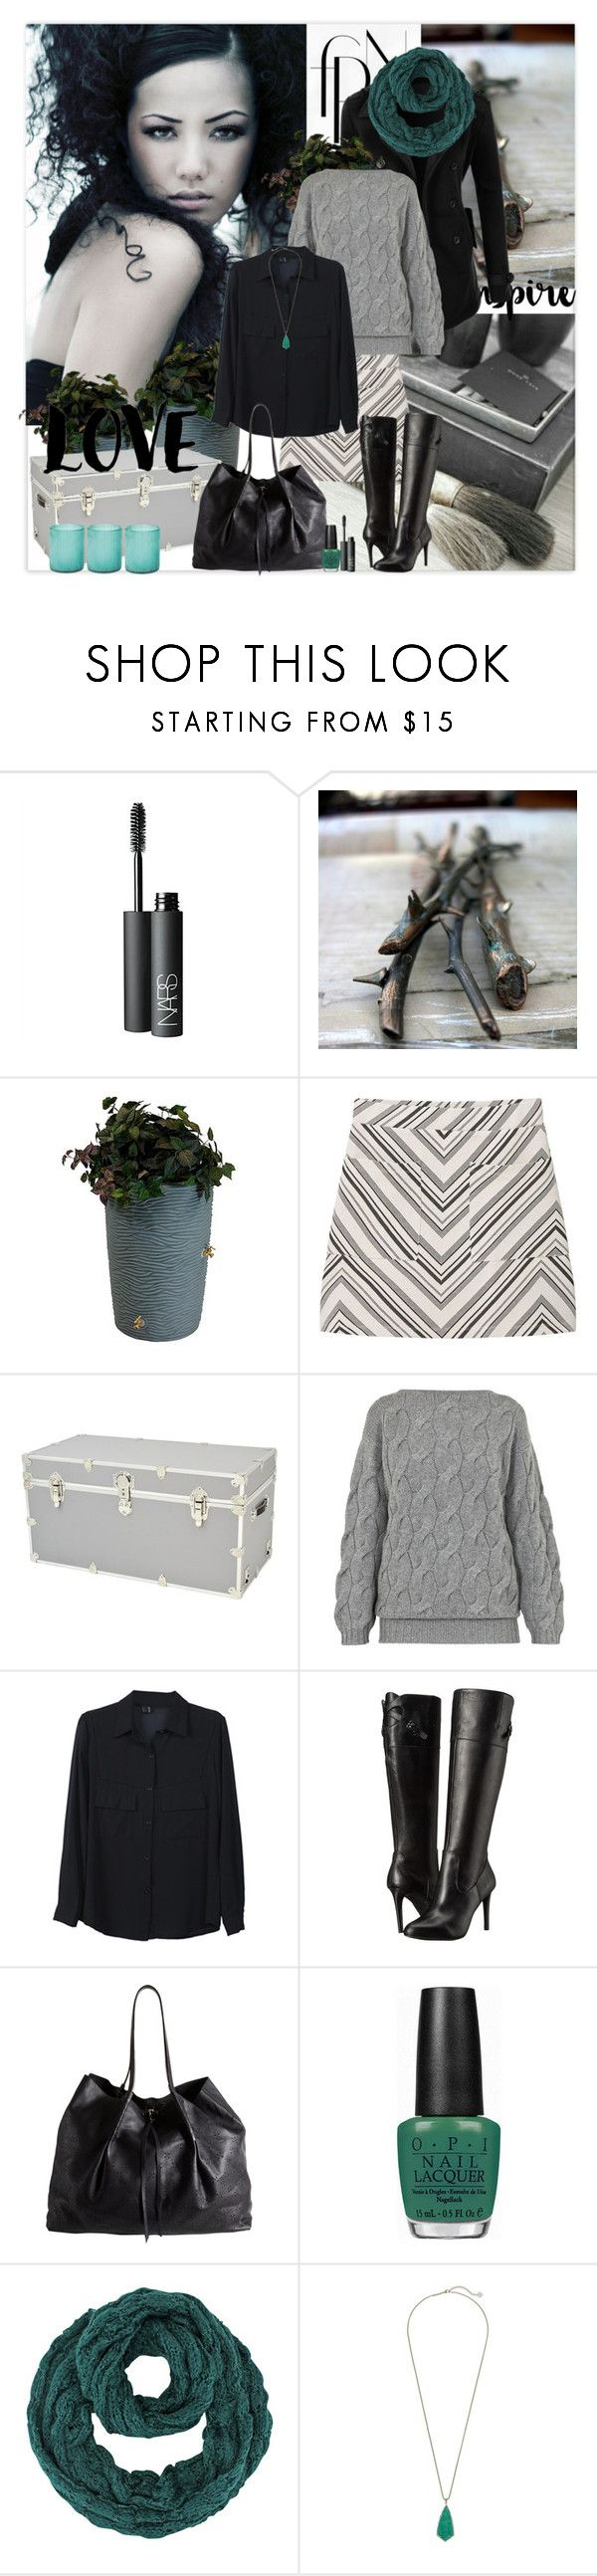 """""""M comme Mode de vie !!! 12"""" by vicky-soleil ❤ liked on Polyvore featuring NARS Cosmetics, LE3NO, Good Ideas, MANGO, AV London, Lauren Ralph Lauren, Nina Ricci, Kendra Scott and Jamie Young"""